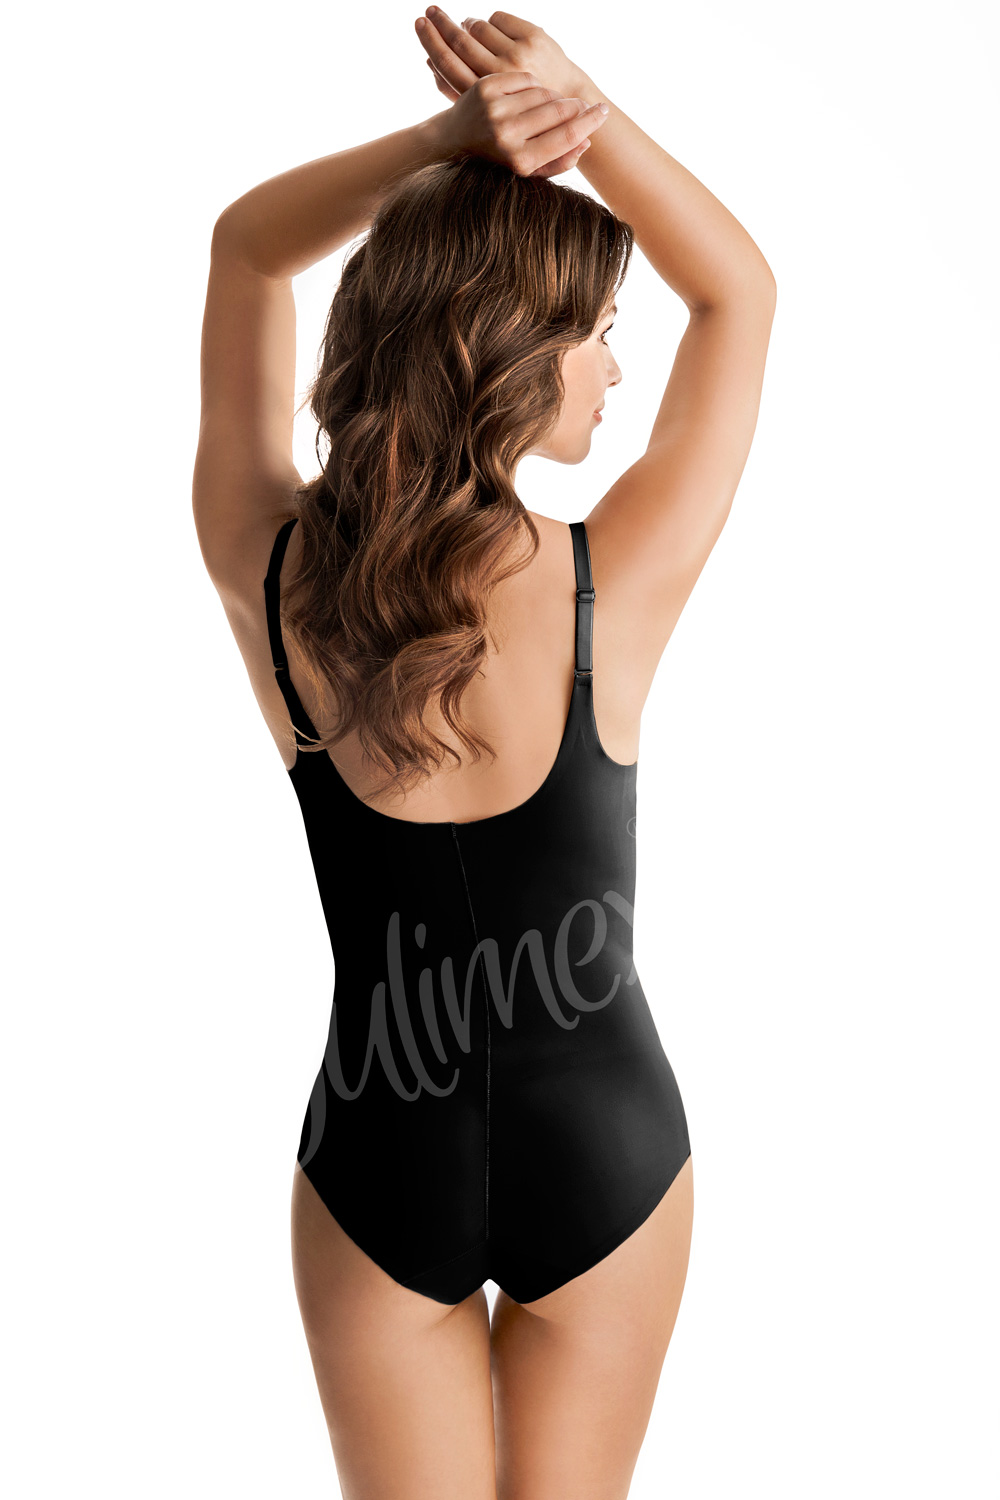 Corset model 119538 Julimex Shapewear